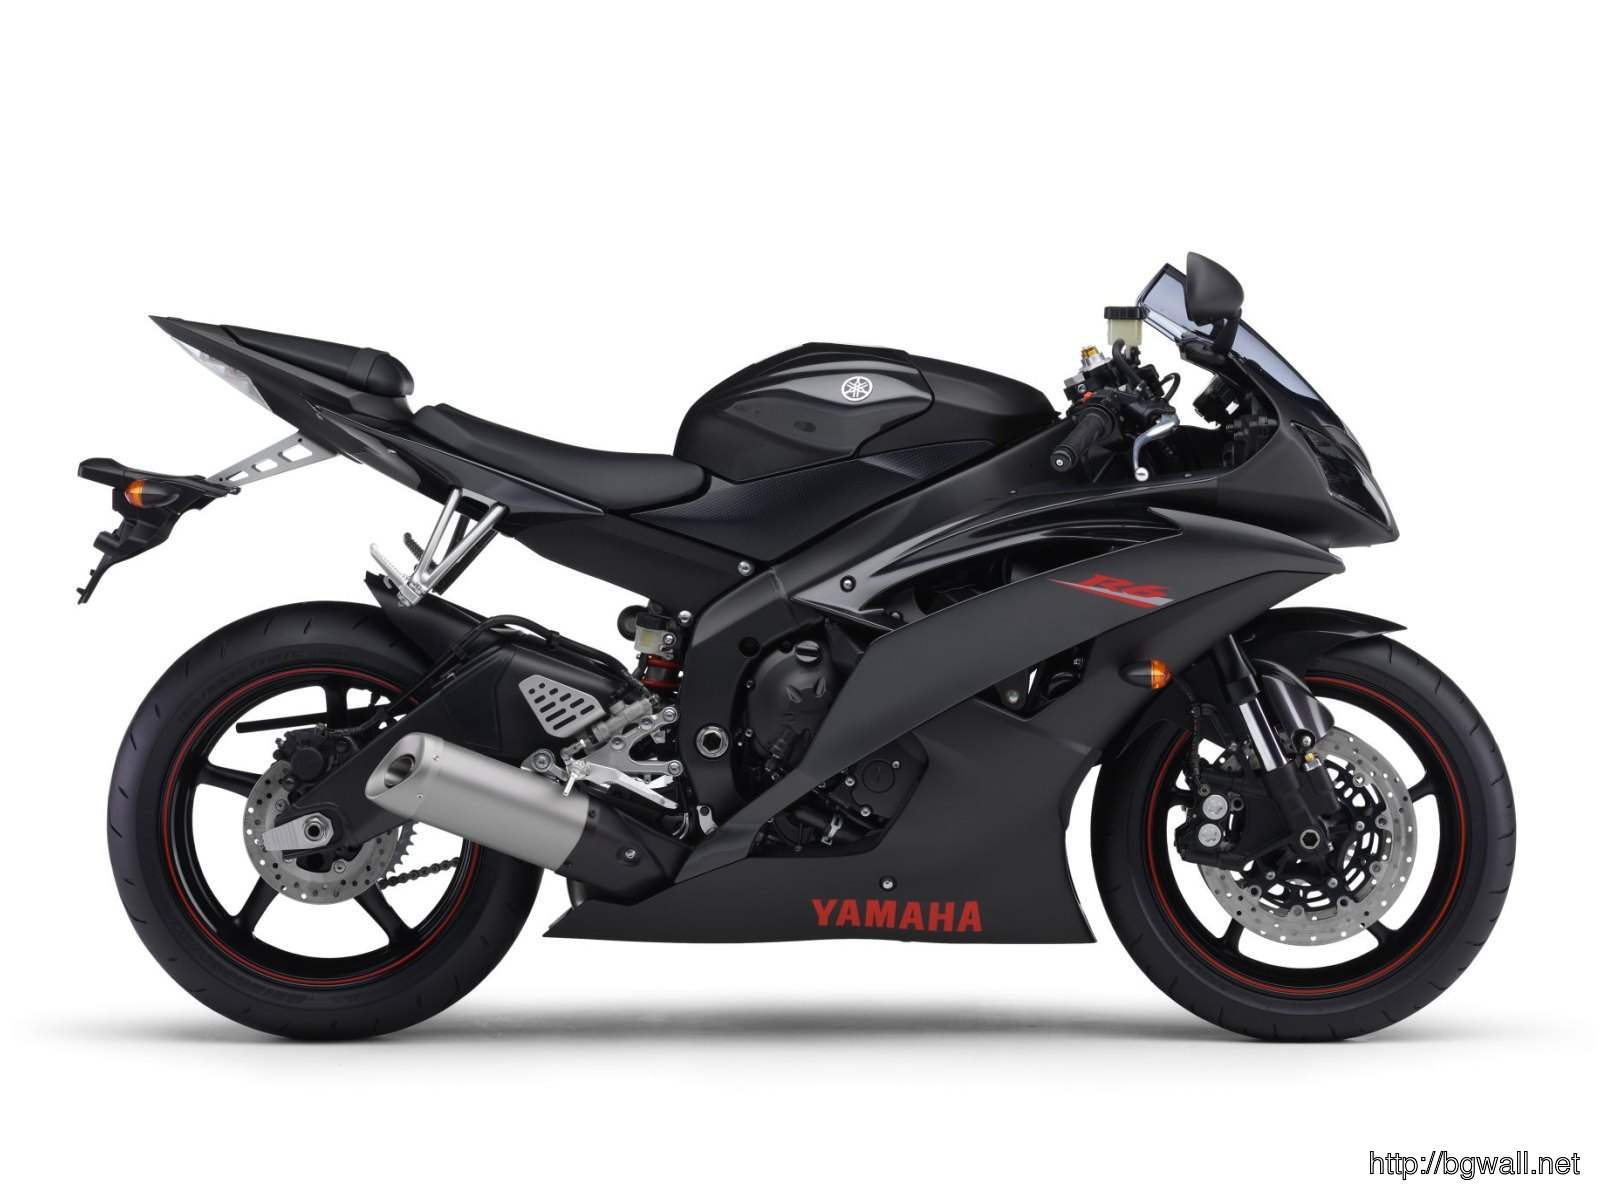 Yamaha Yzf R6 2013 Wallpapers Full Size